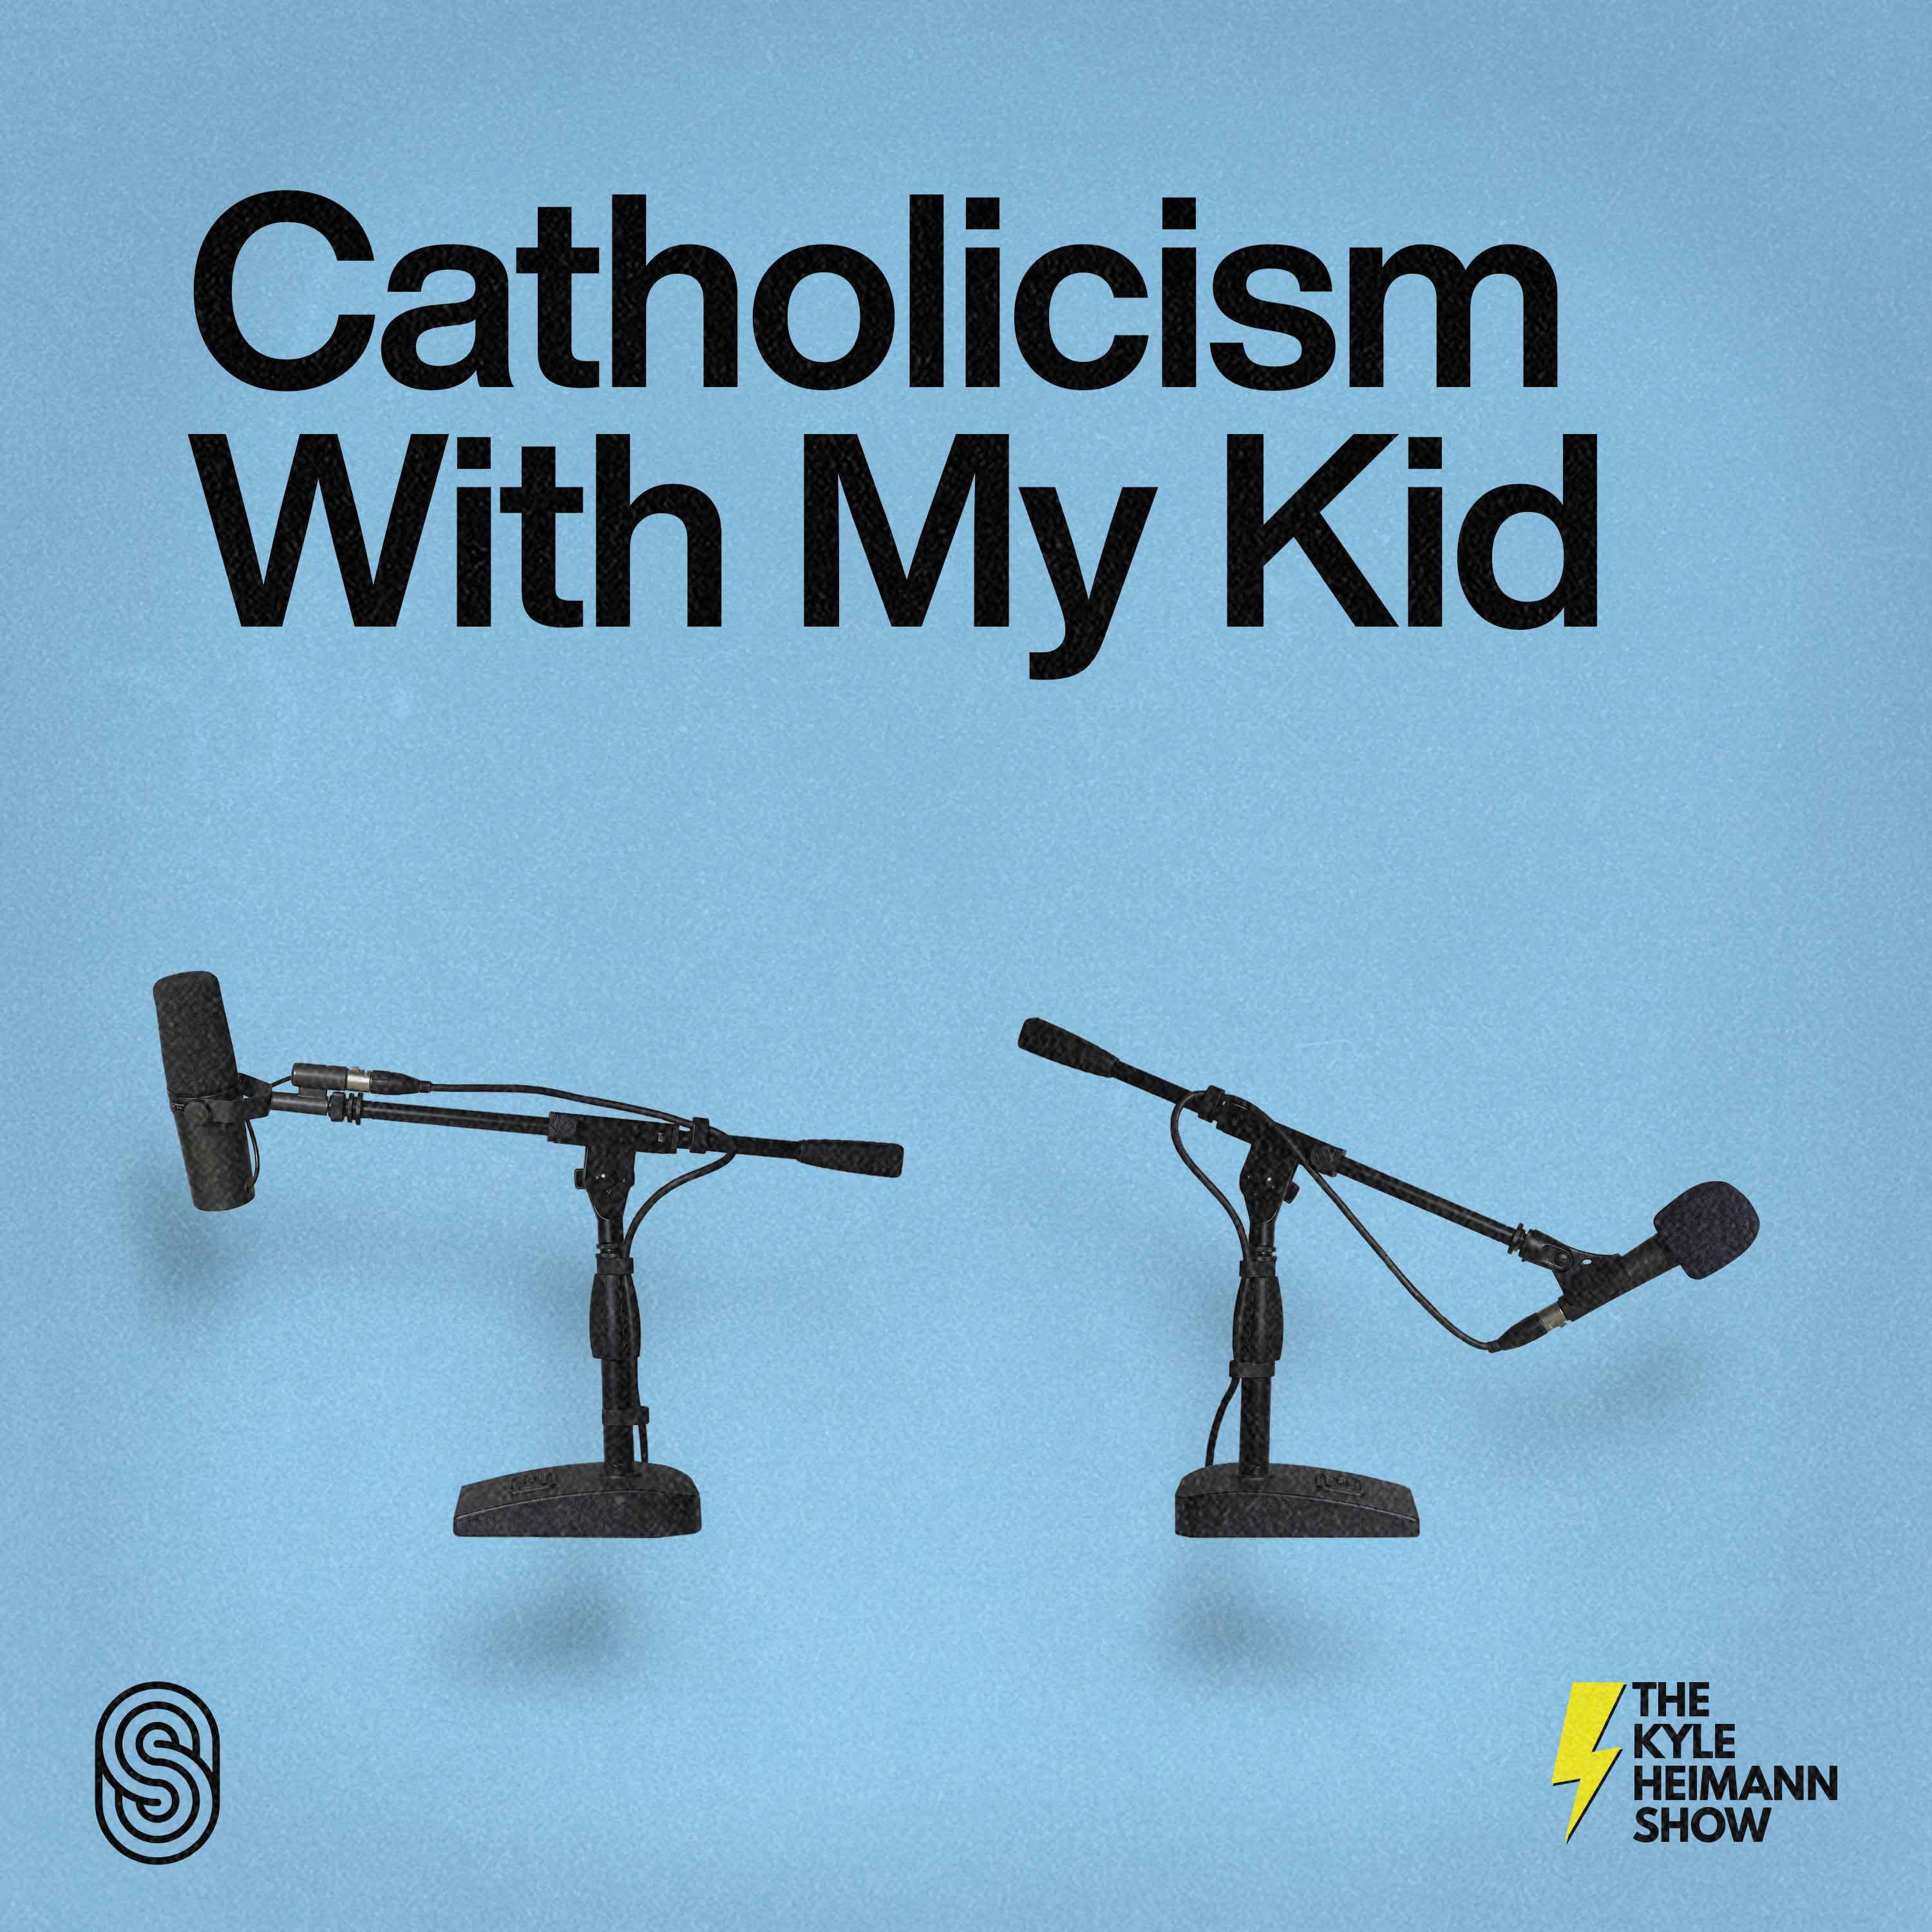 Catholicism With My Kid - The Kyle Heimann Show